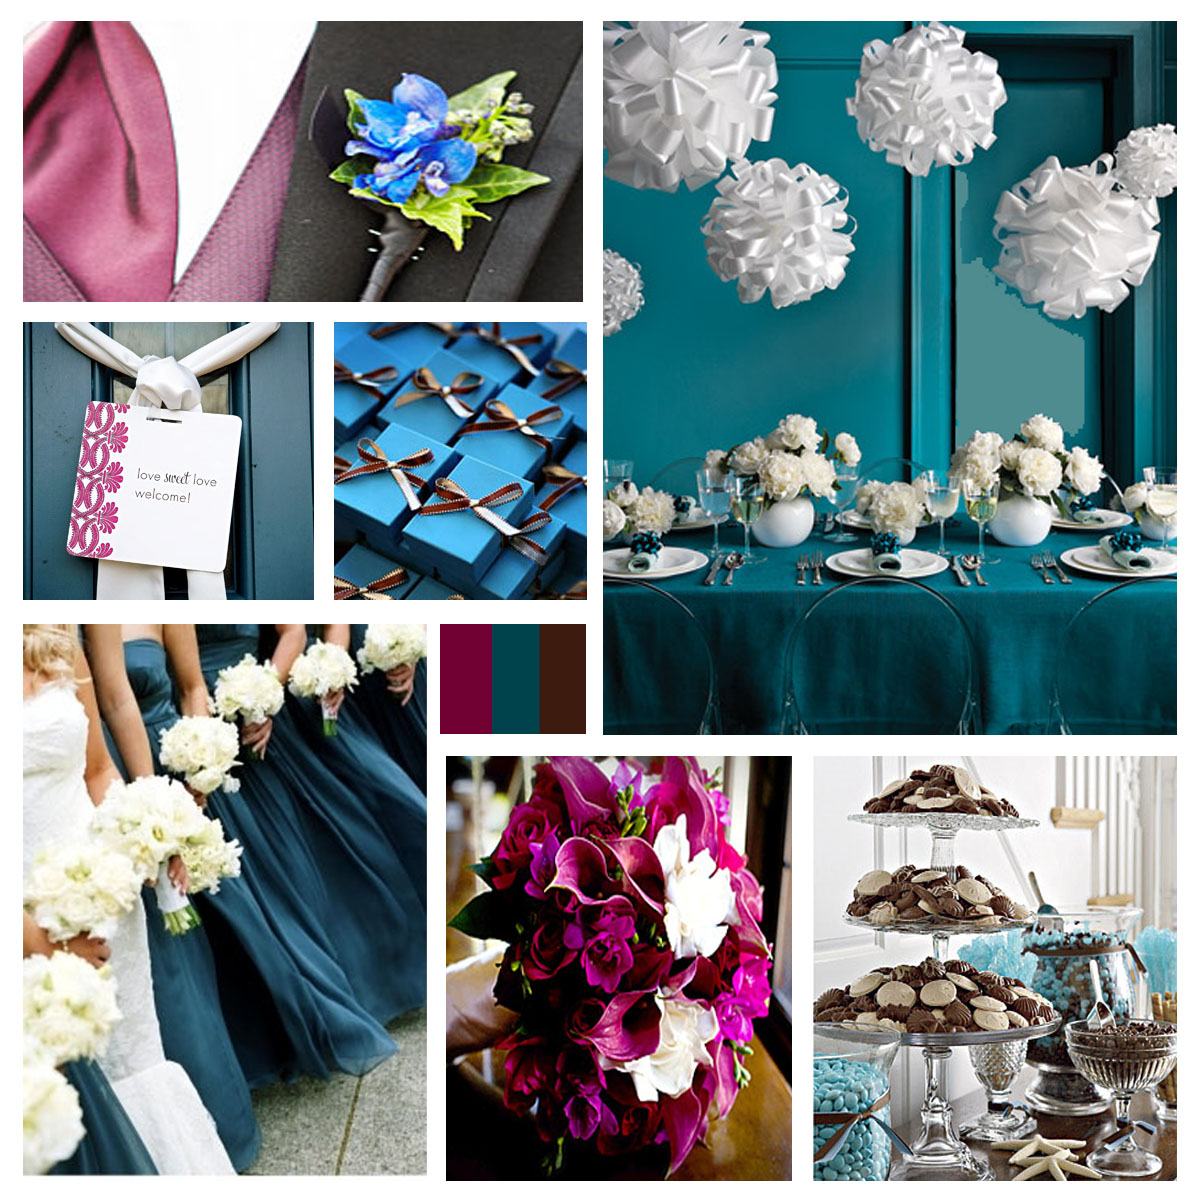 Roses And Doves: Emerald Green Theme